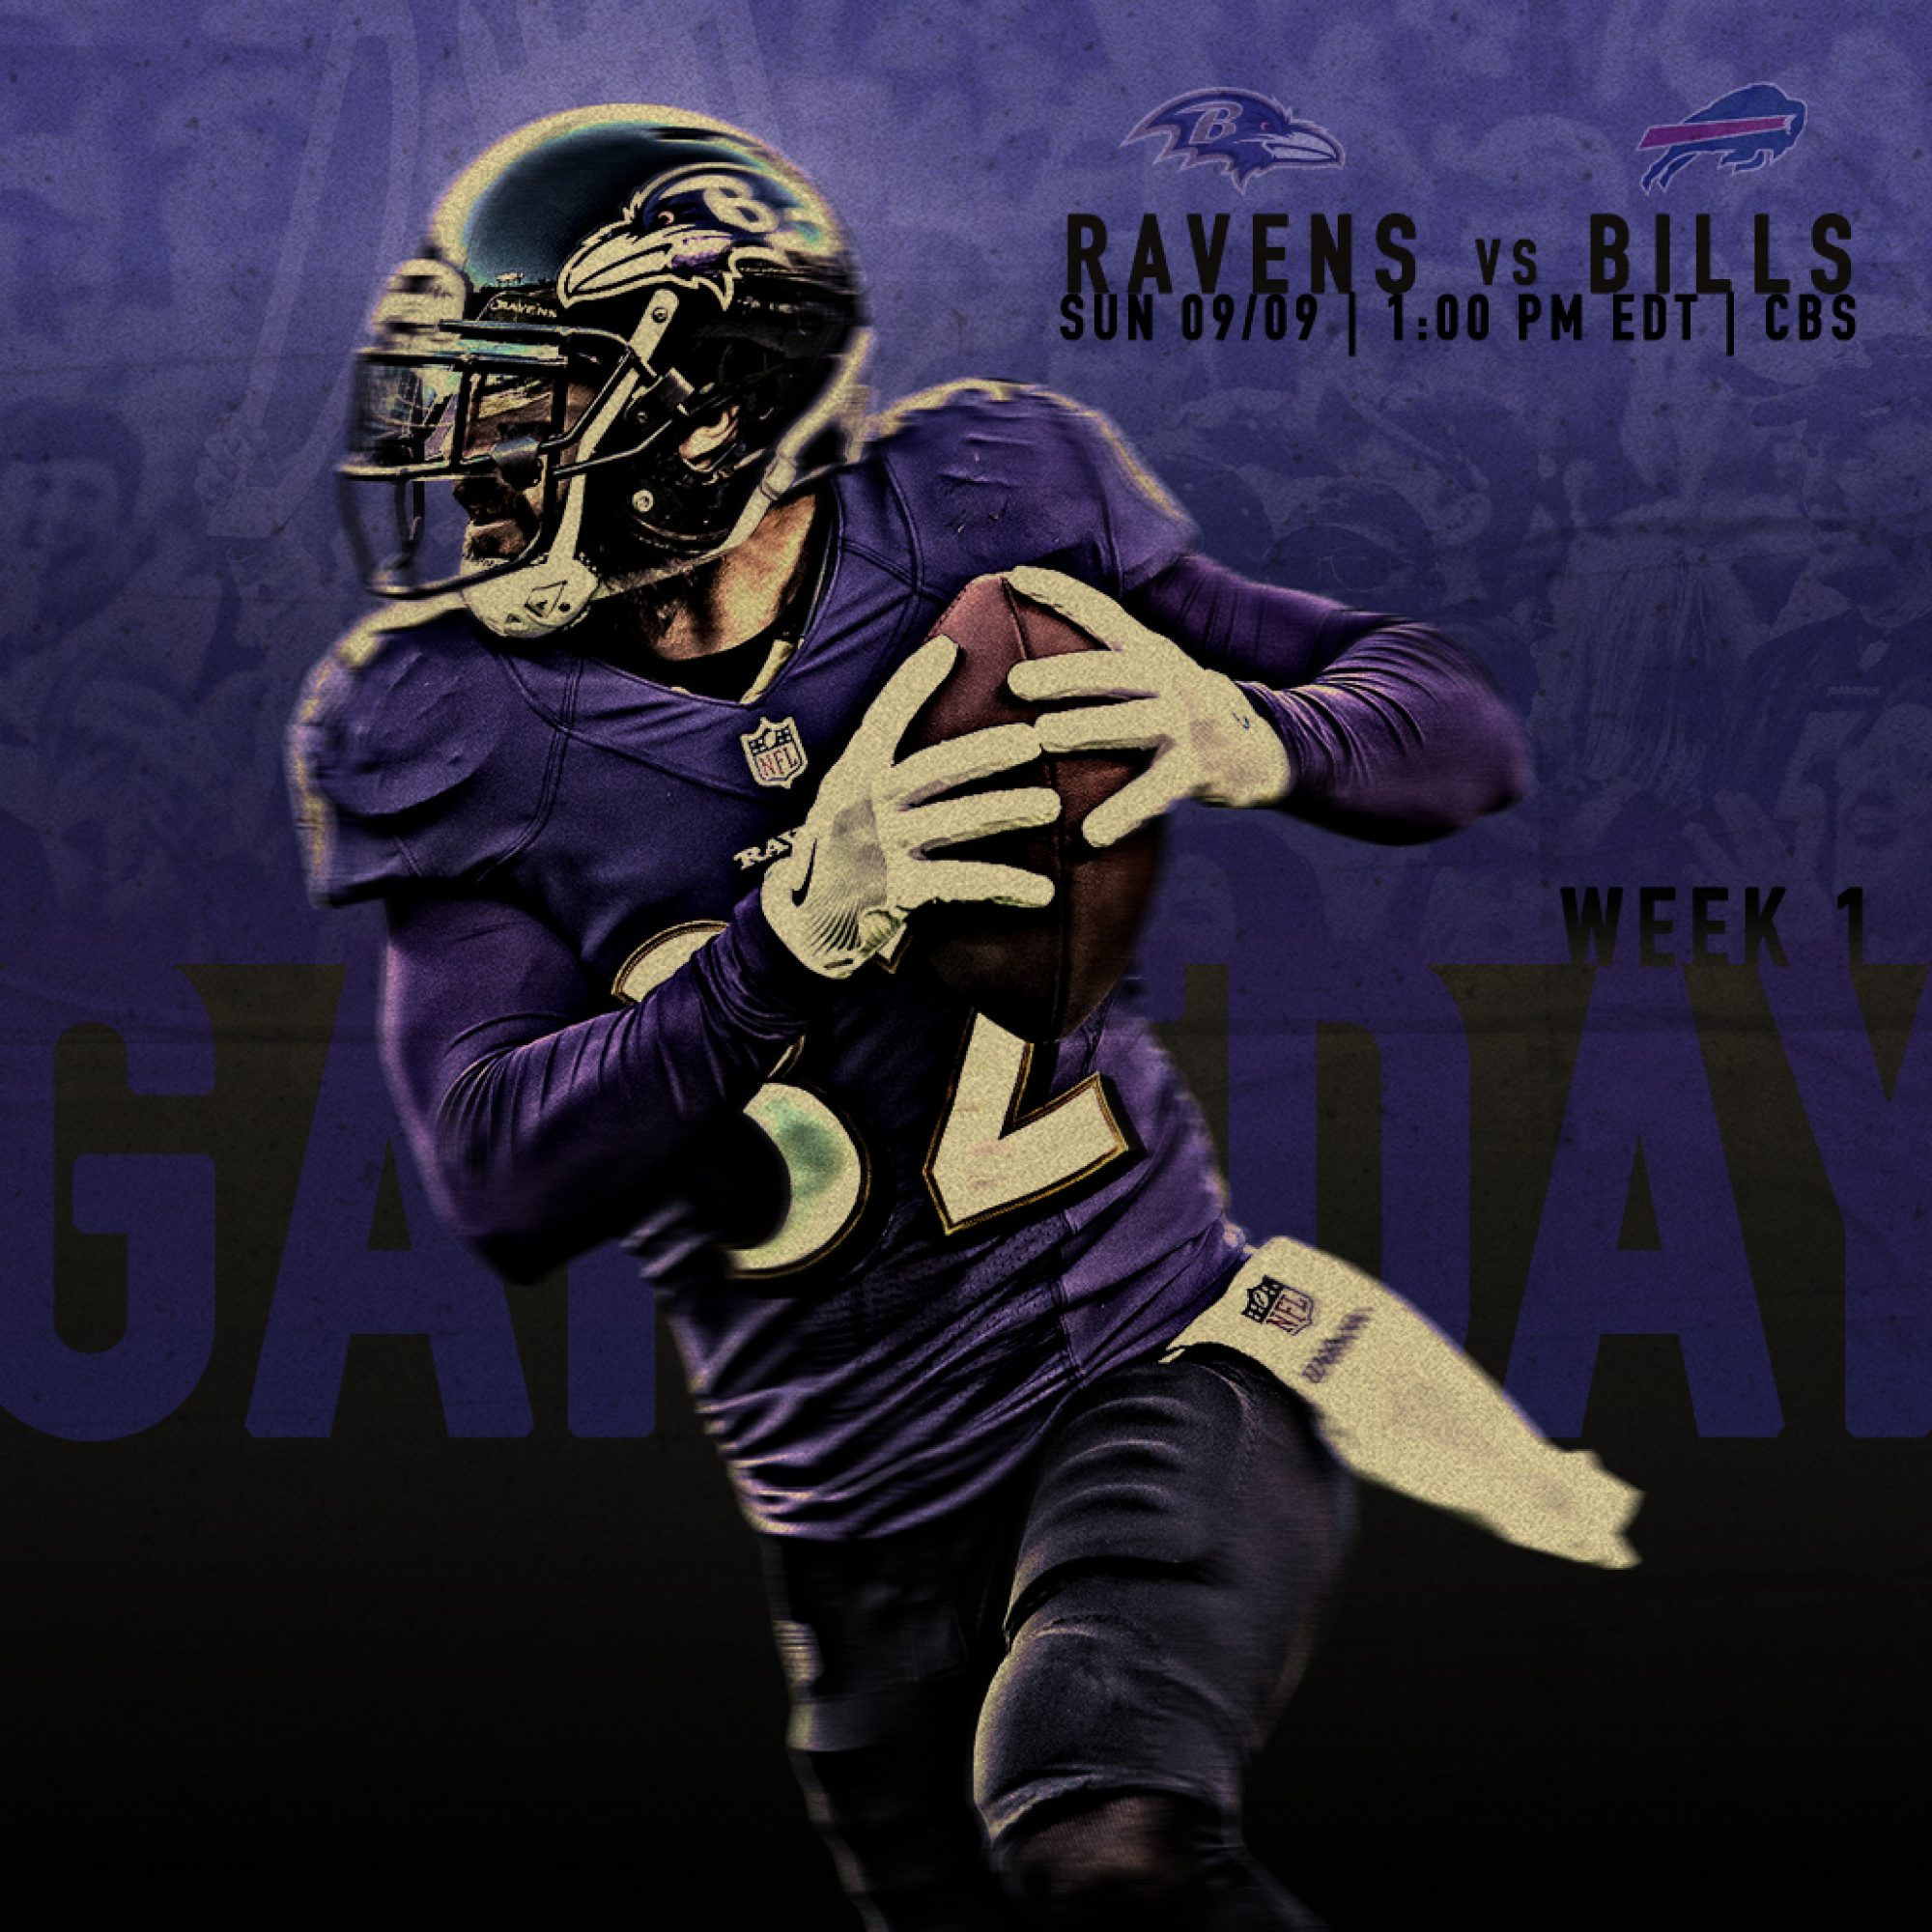 ravens_2colorgameday_weddle_squ